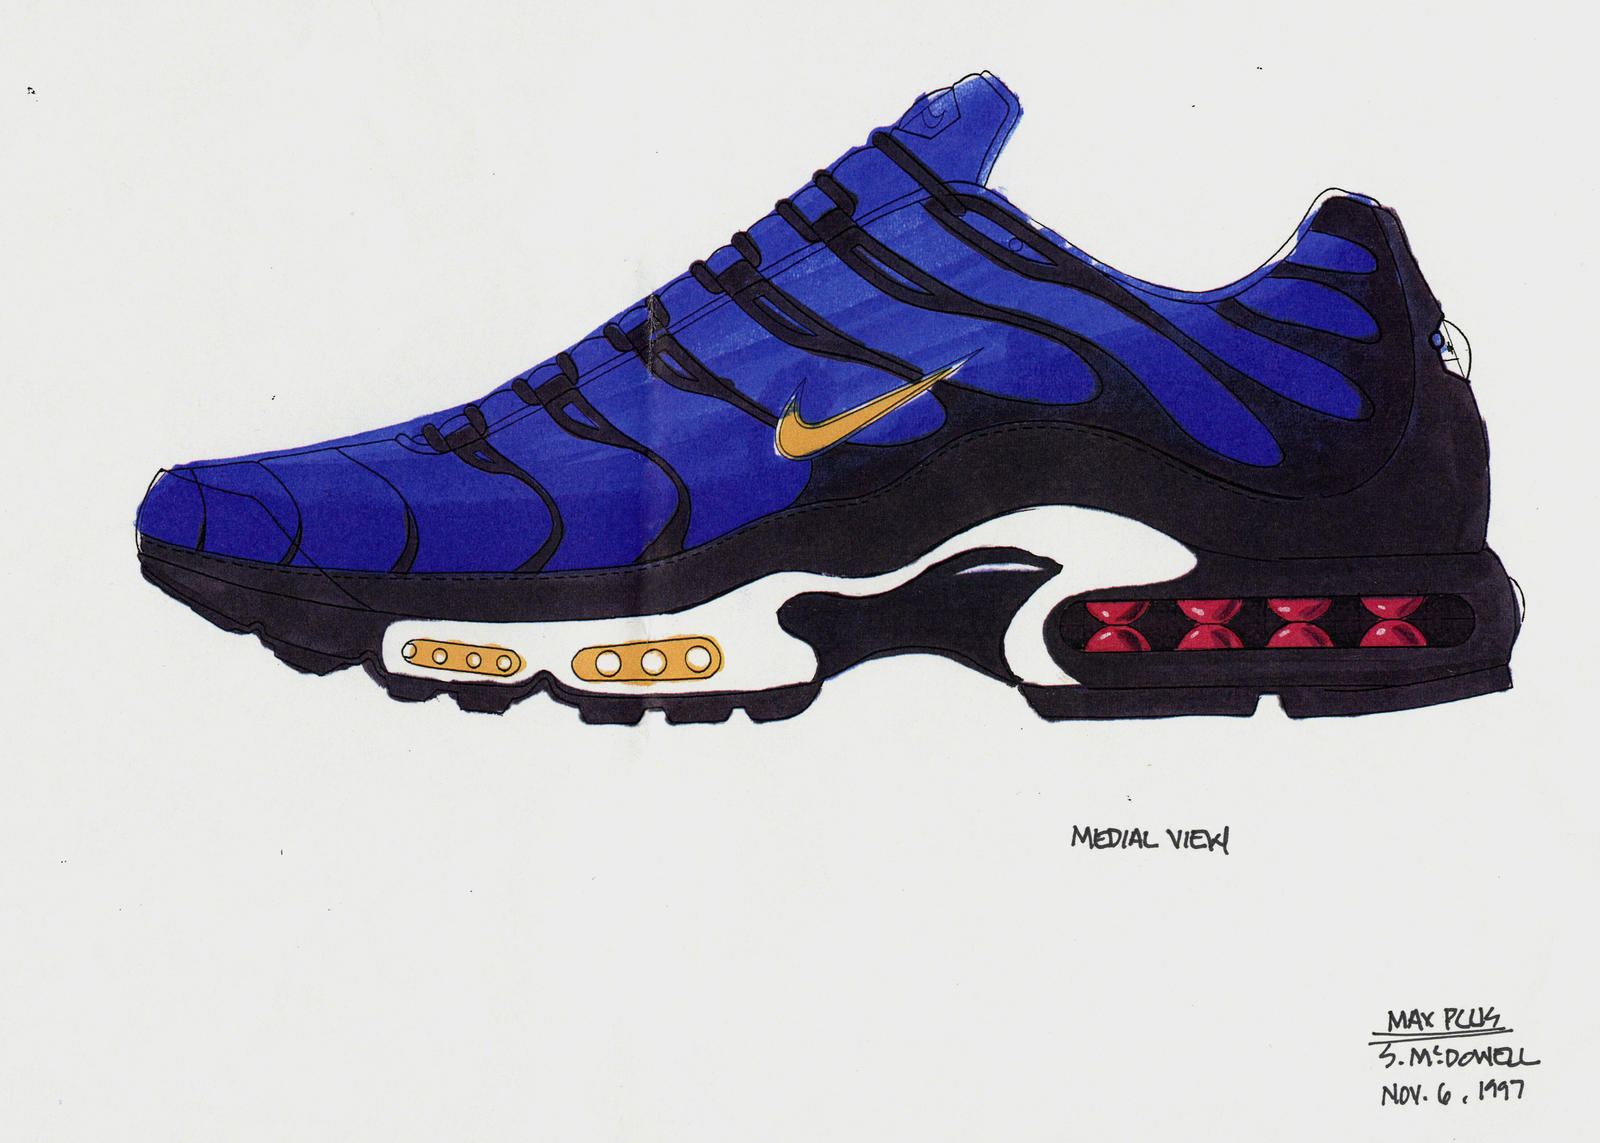 c8b6c62df62 The Untold Story of the Nike Air Max Plus - Nike News